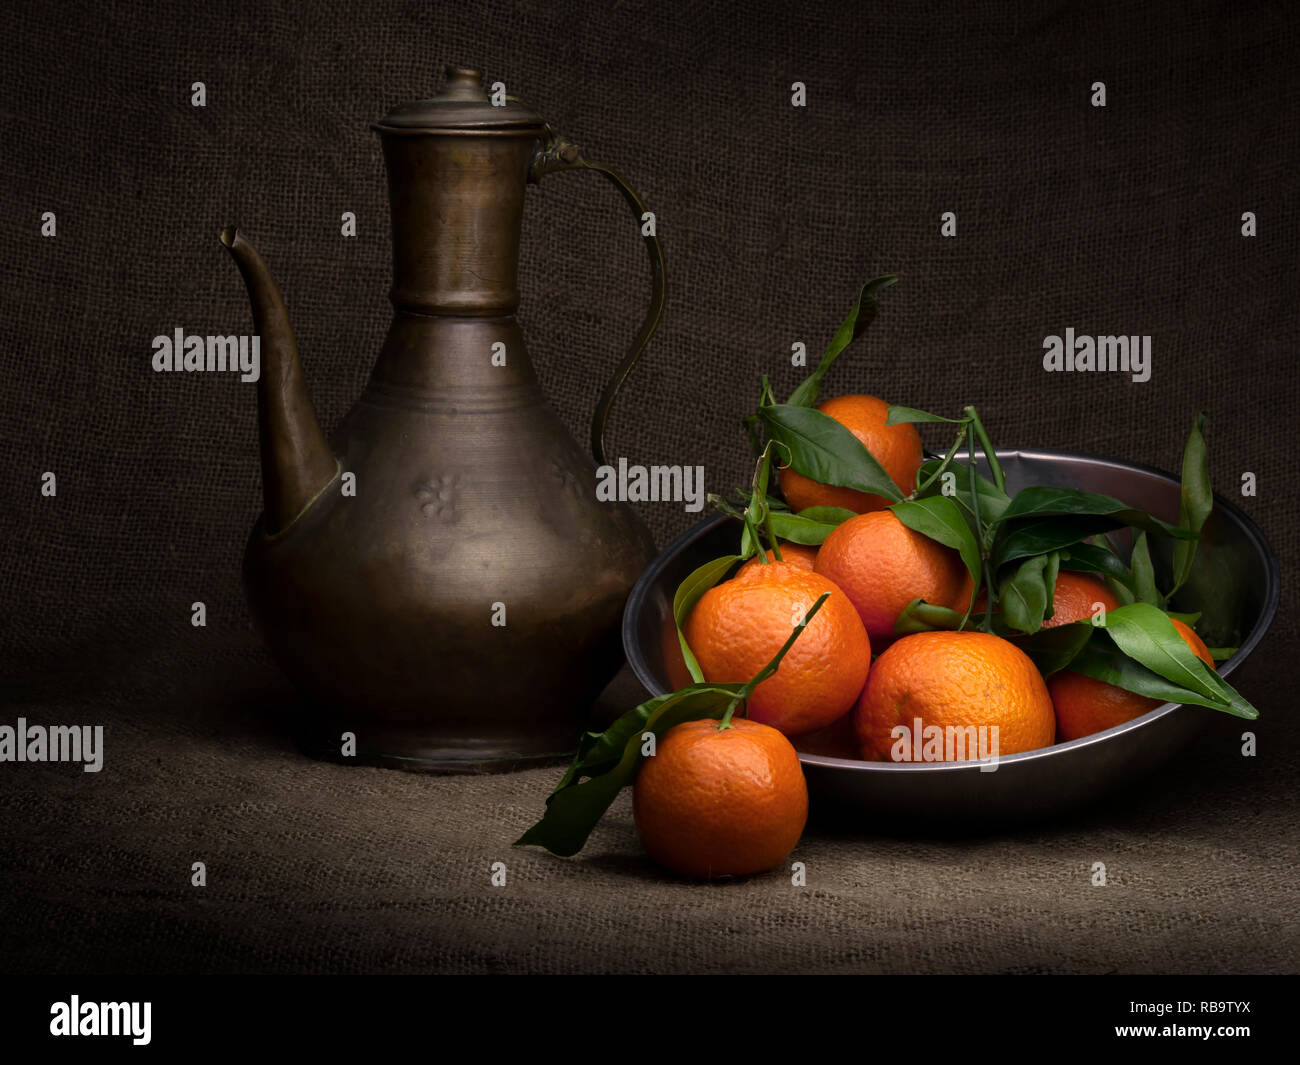 Tea and oranges. Several fruit in a metal container, with old copper teapot. Light painted with copyspace and vignette effect. - Stock Image